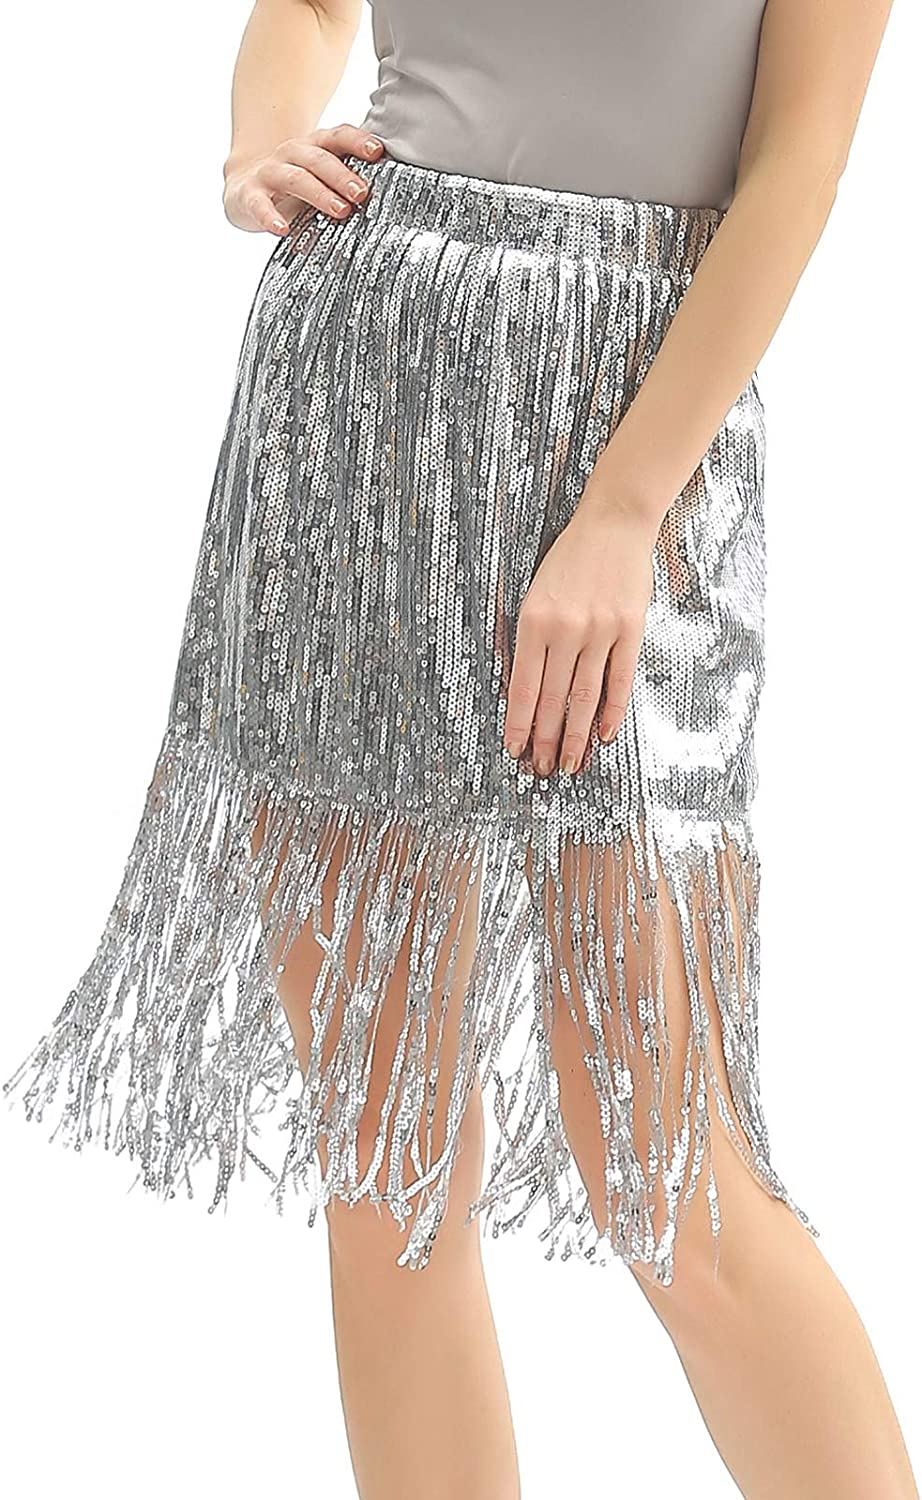 Radtengle Women's Sequin Skirt Sparkly Midi Skirts Pencil for Work Party Shimmer Cocktail Clubwear with Sequin Tassel